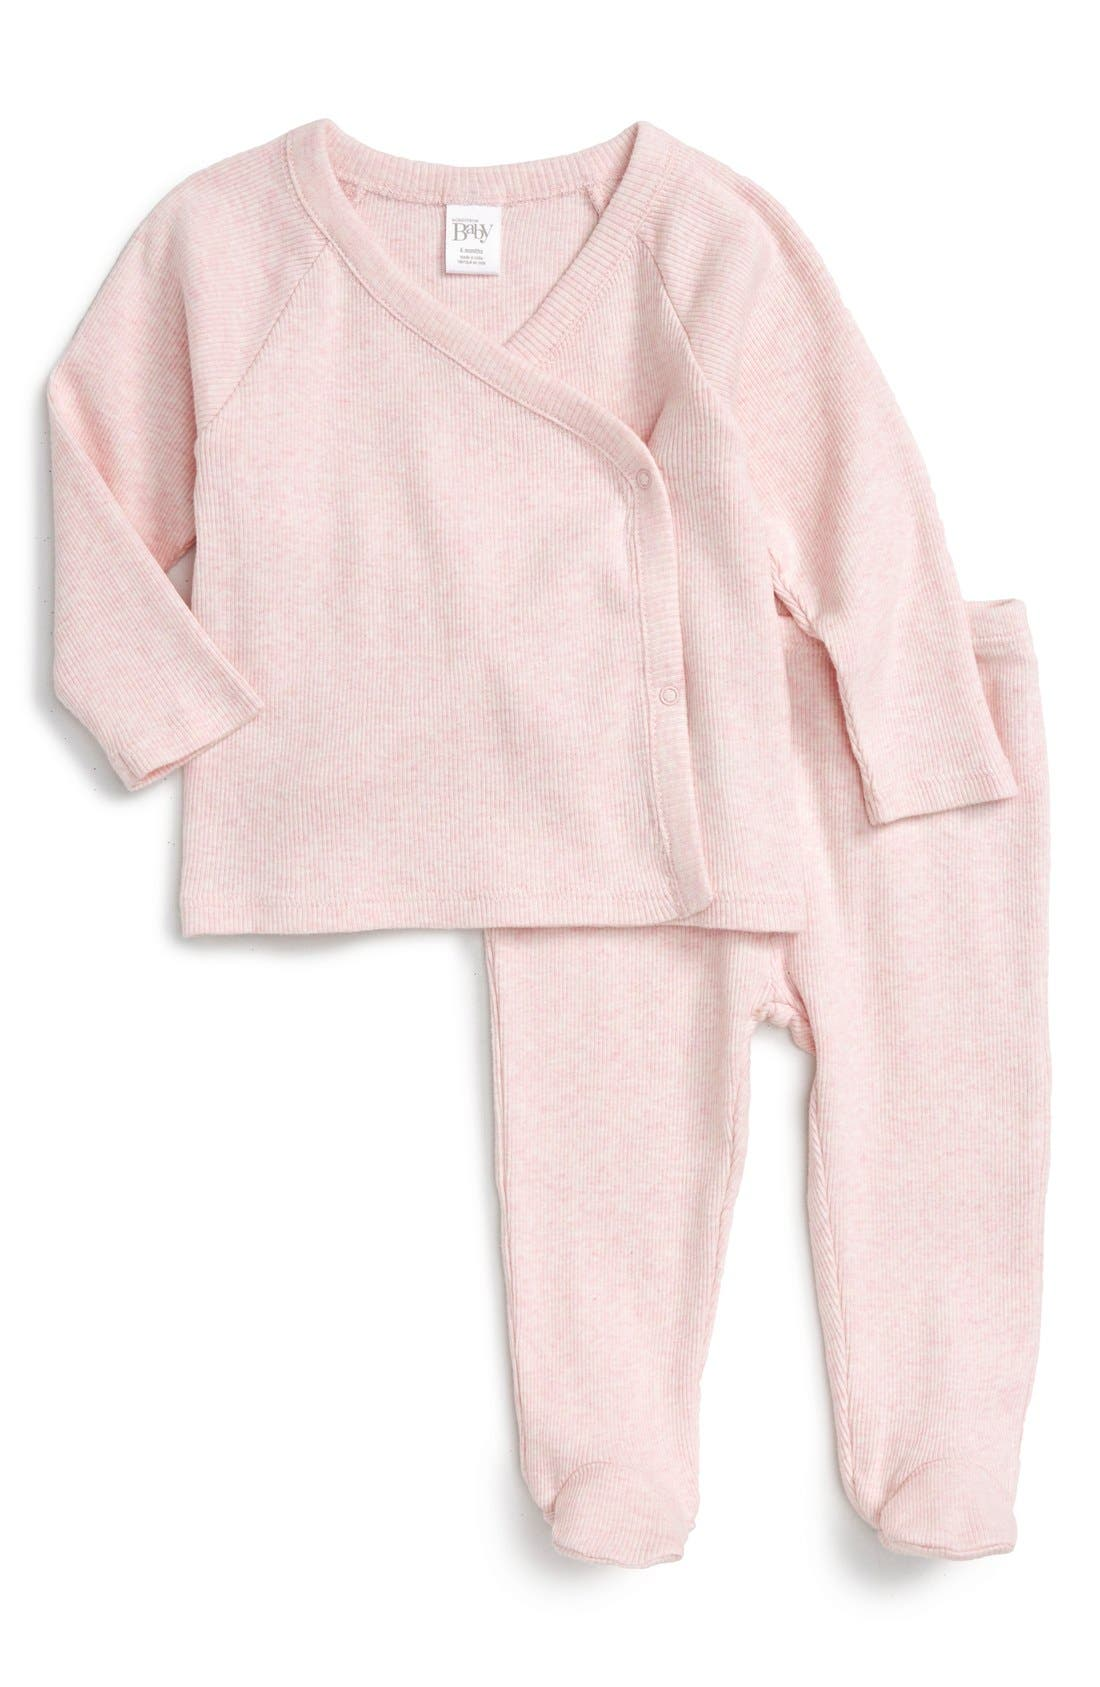 Alternate Image 1 Selected - Nordstrom Baby Wrap Top & Footed Pants Set (Baby Girls)